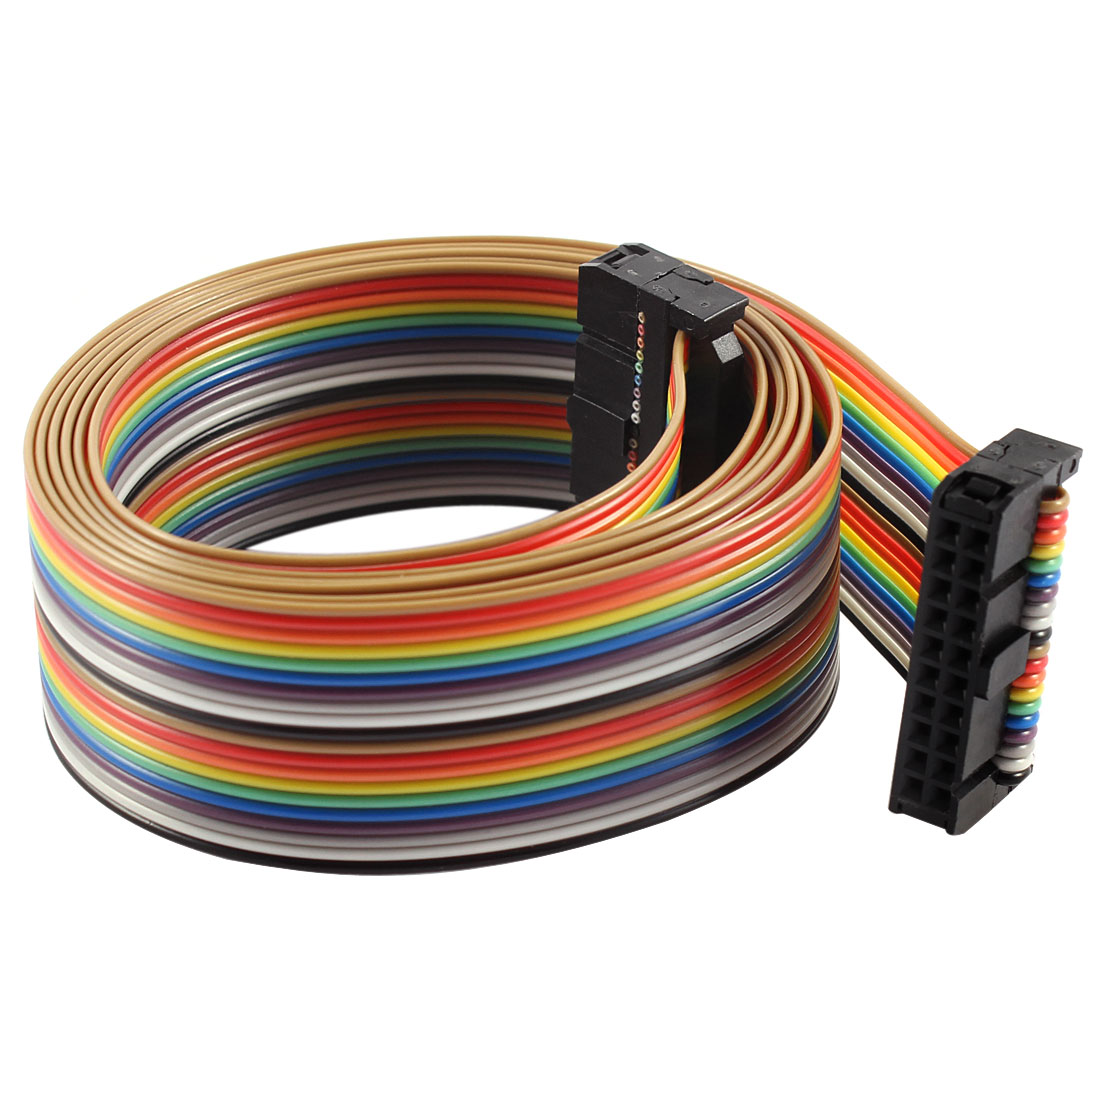 2.54mm Pitch 20 Pin 20 Way F/F Connector IDC Flat Rainbow Ribbon Cable 118cm